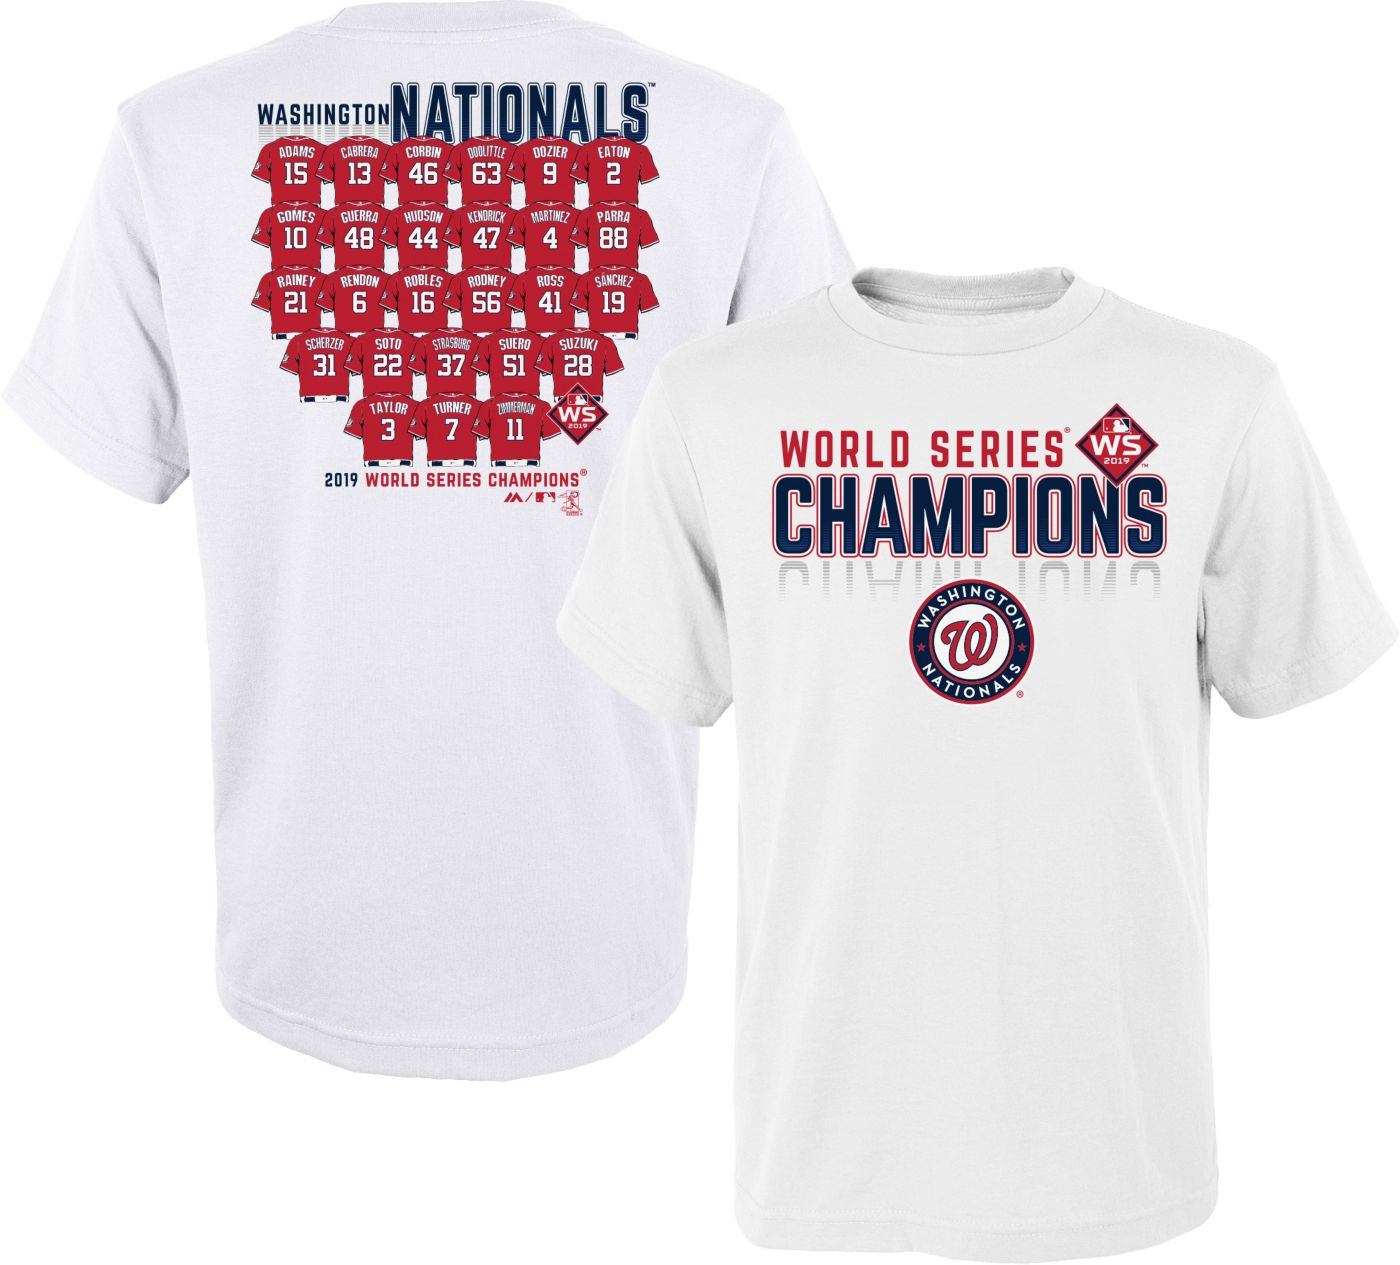 Youth 2019 World Series Champions Washington Nationals Roster T-Shirt